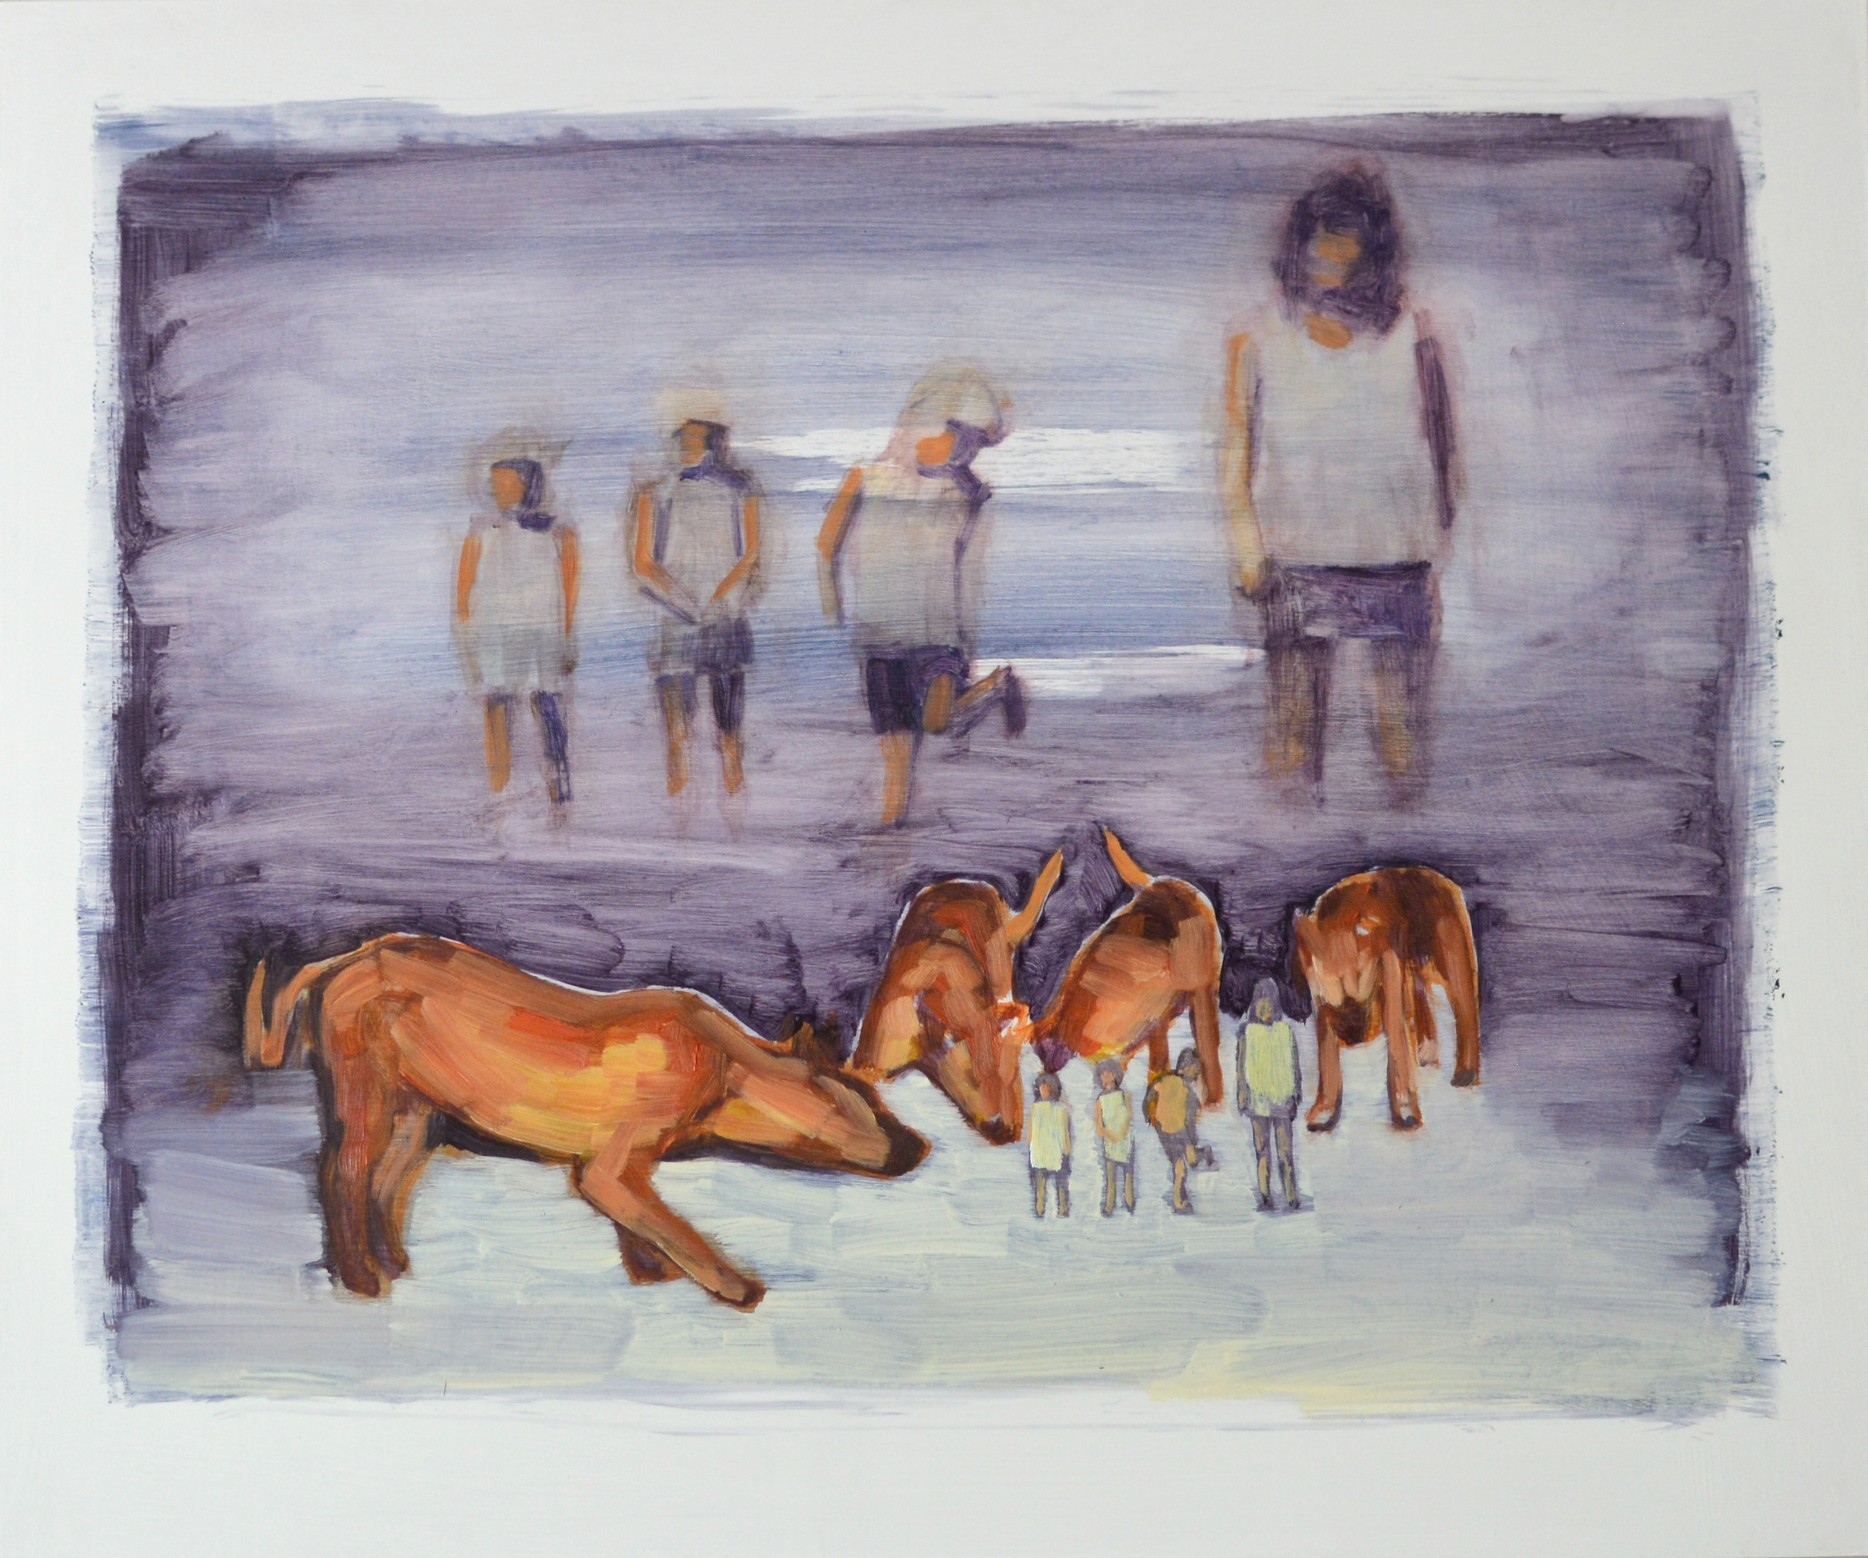 Sarah Gosling, Underdogs, 2017 oil on panel, 60 x 50 cm, available